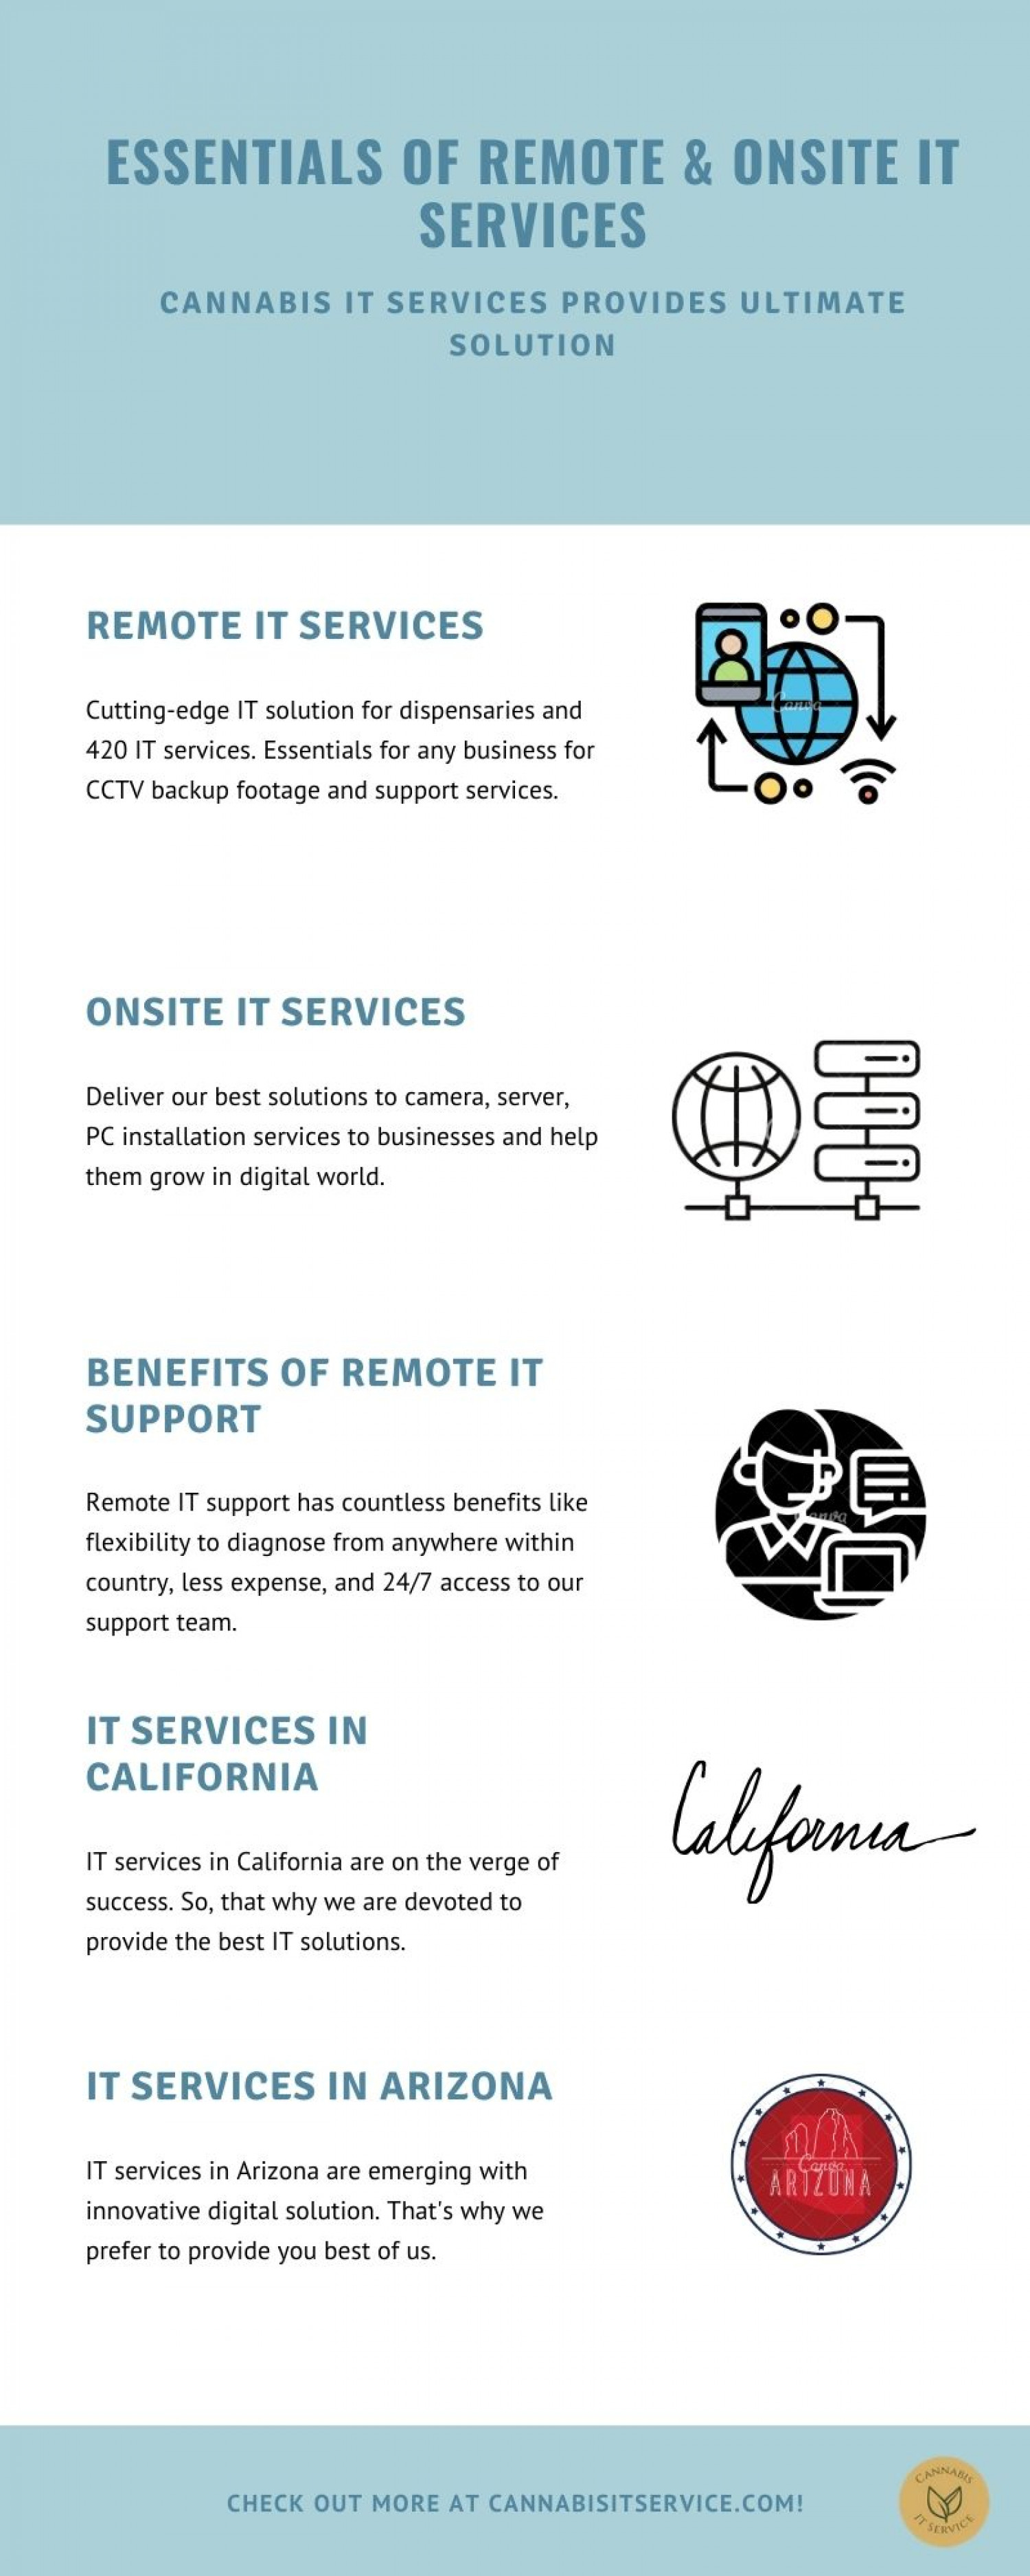 Essentials of Remote & On-Site IT Services Infographic